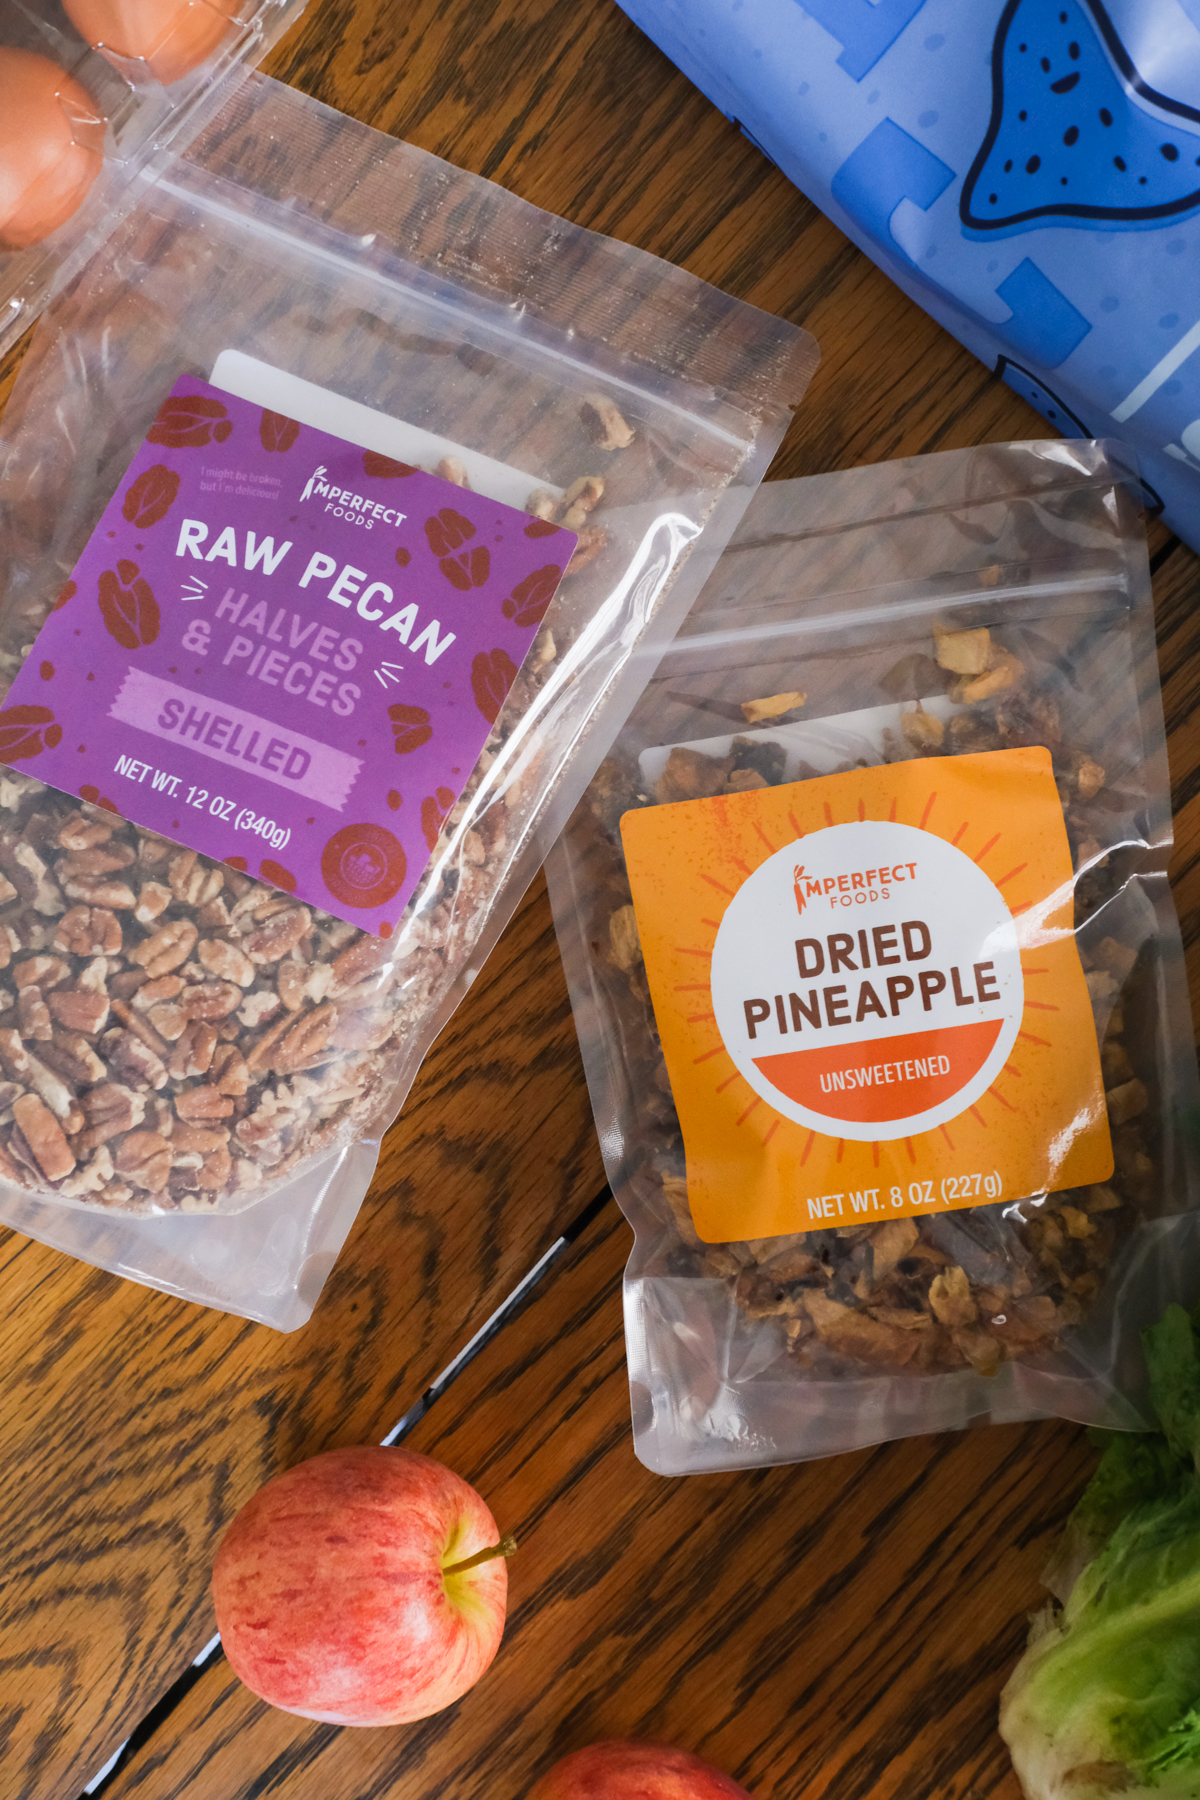 dried nut and fruit bags from my imperfect foods box